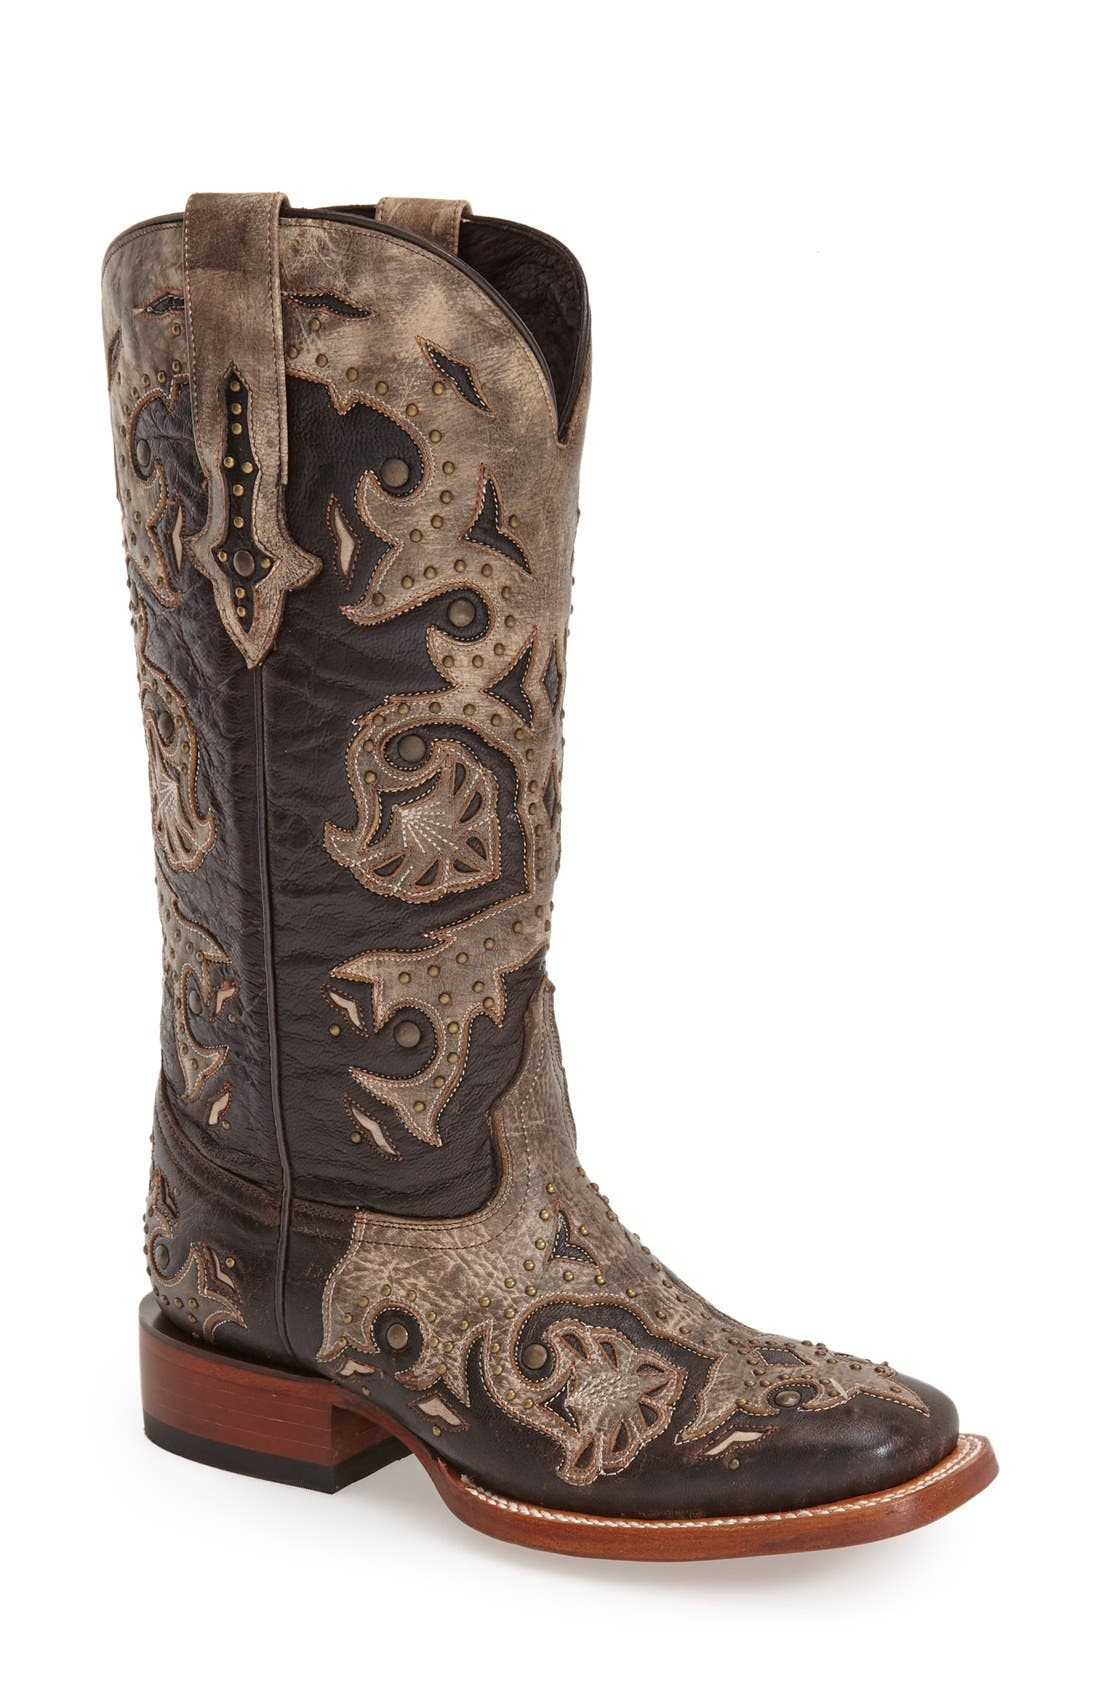 Alternate Image 1 Selected - LuccheseStudded Western Boot (Women)